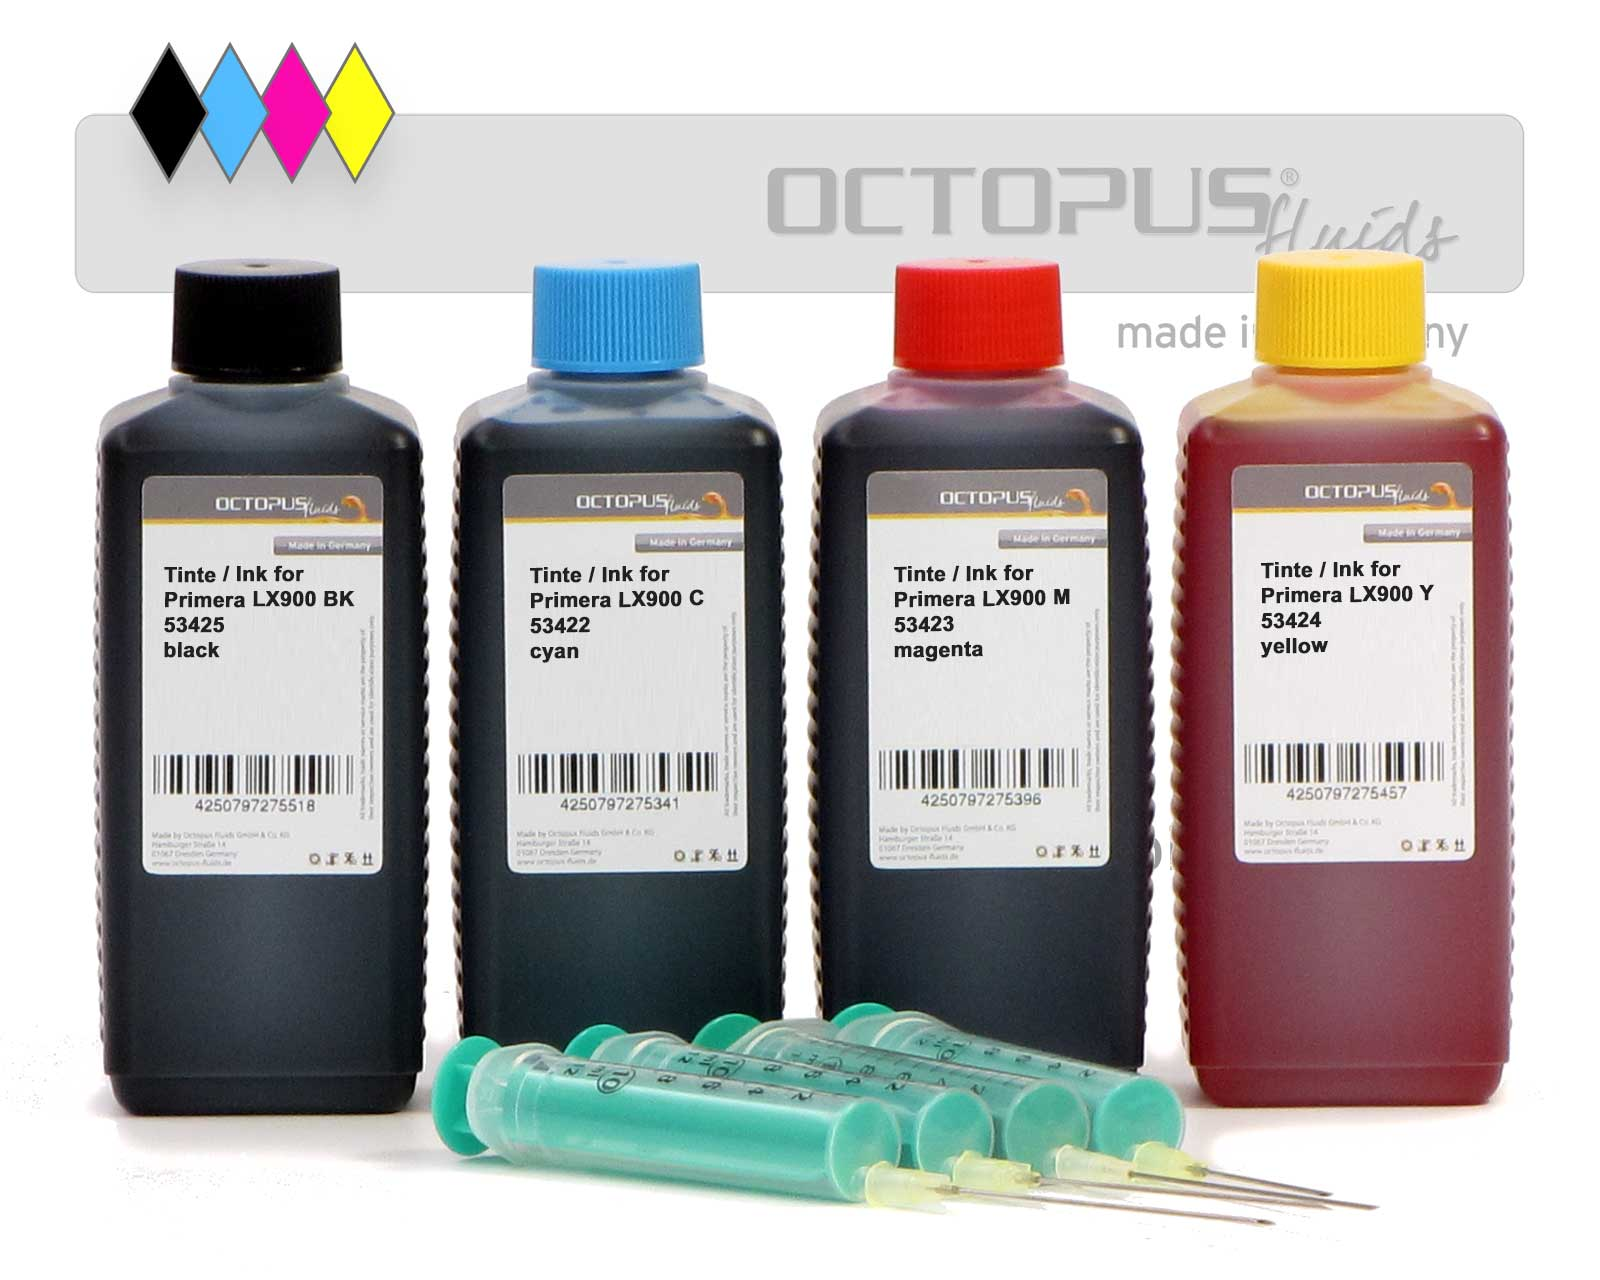 Refill inks for Primera LX900 cartridges